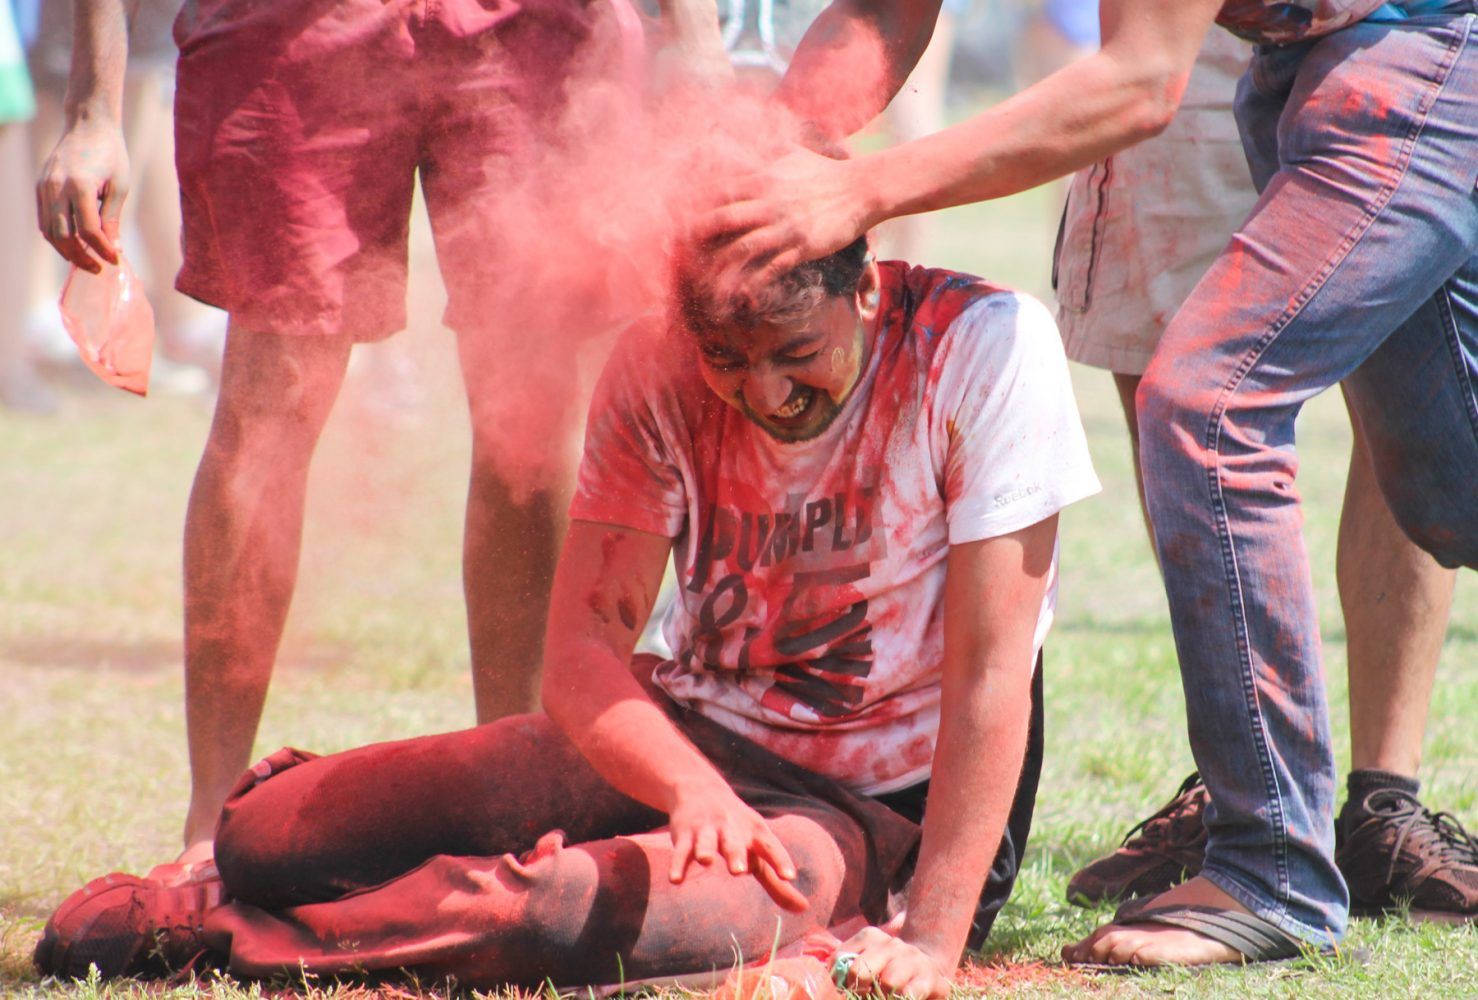 A man gets covered in red colored cornstarch while celebrating at the Holi festival.